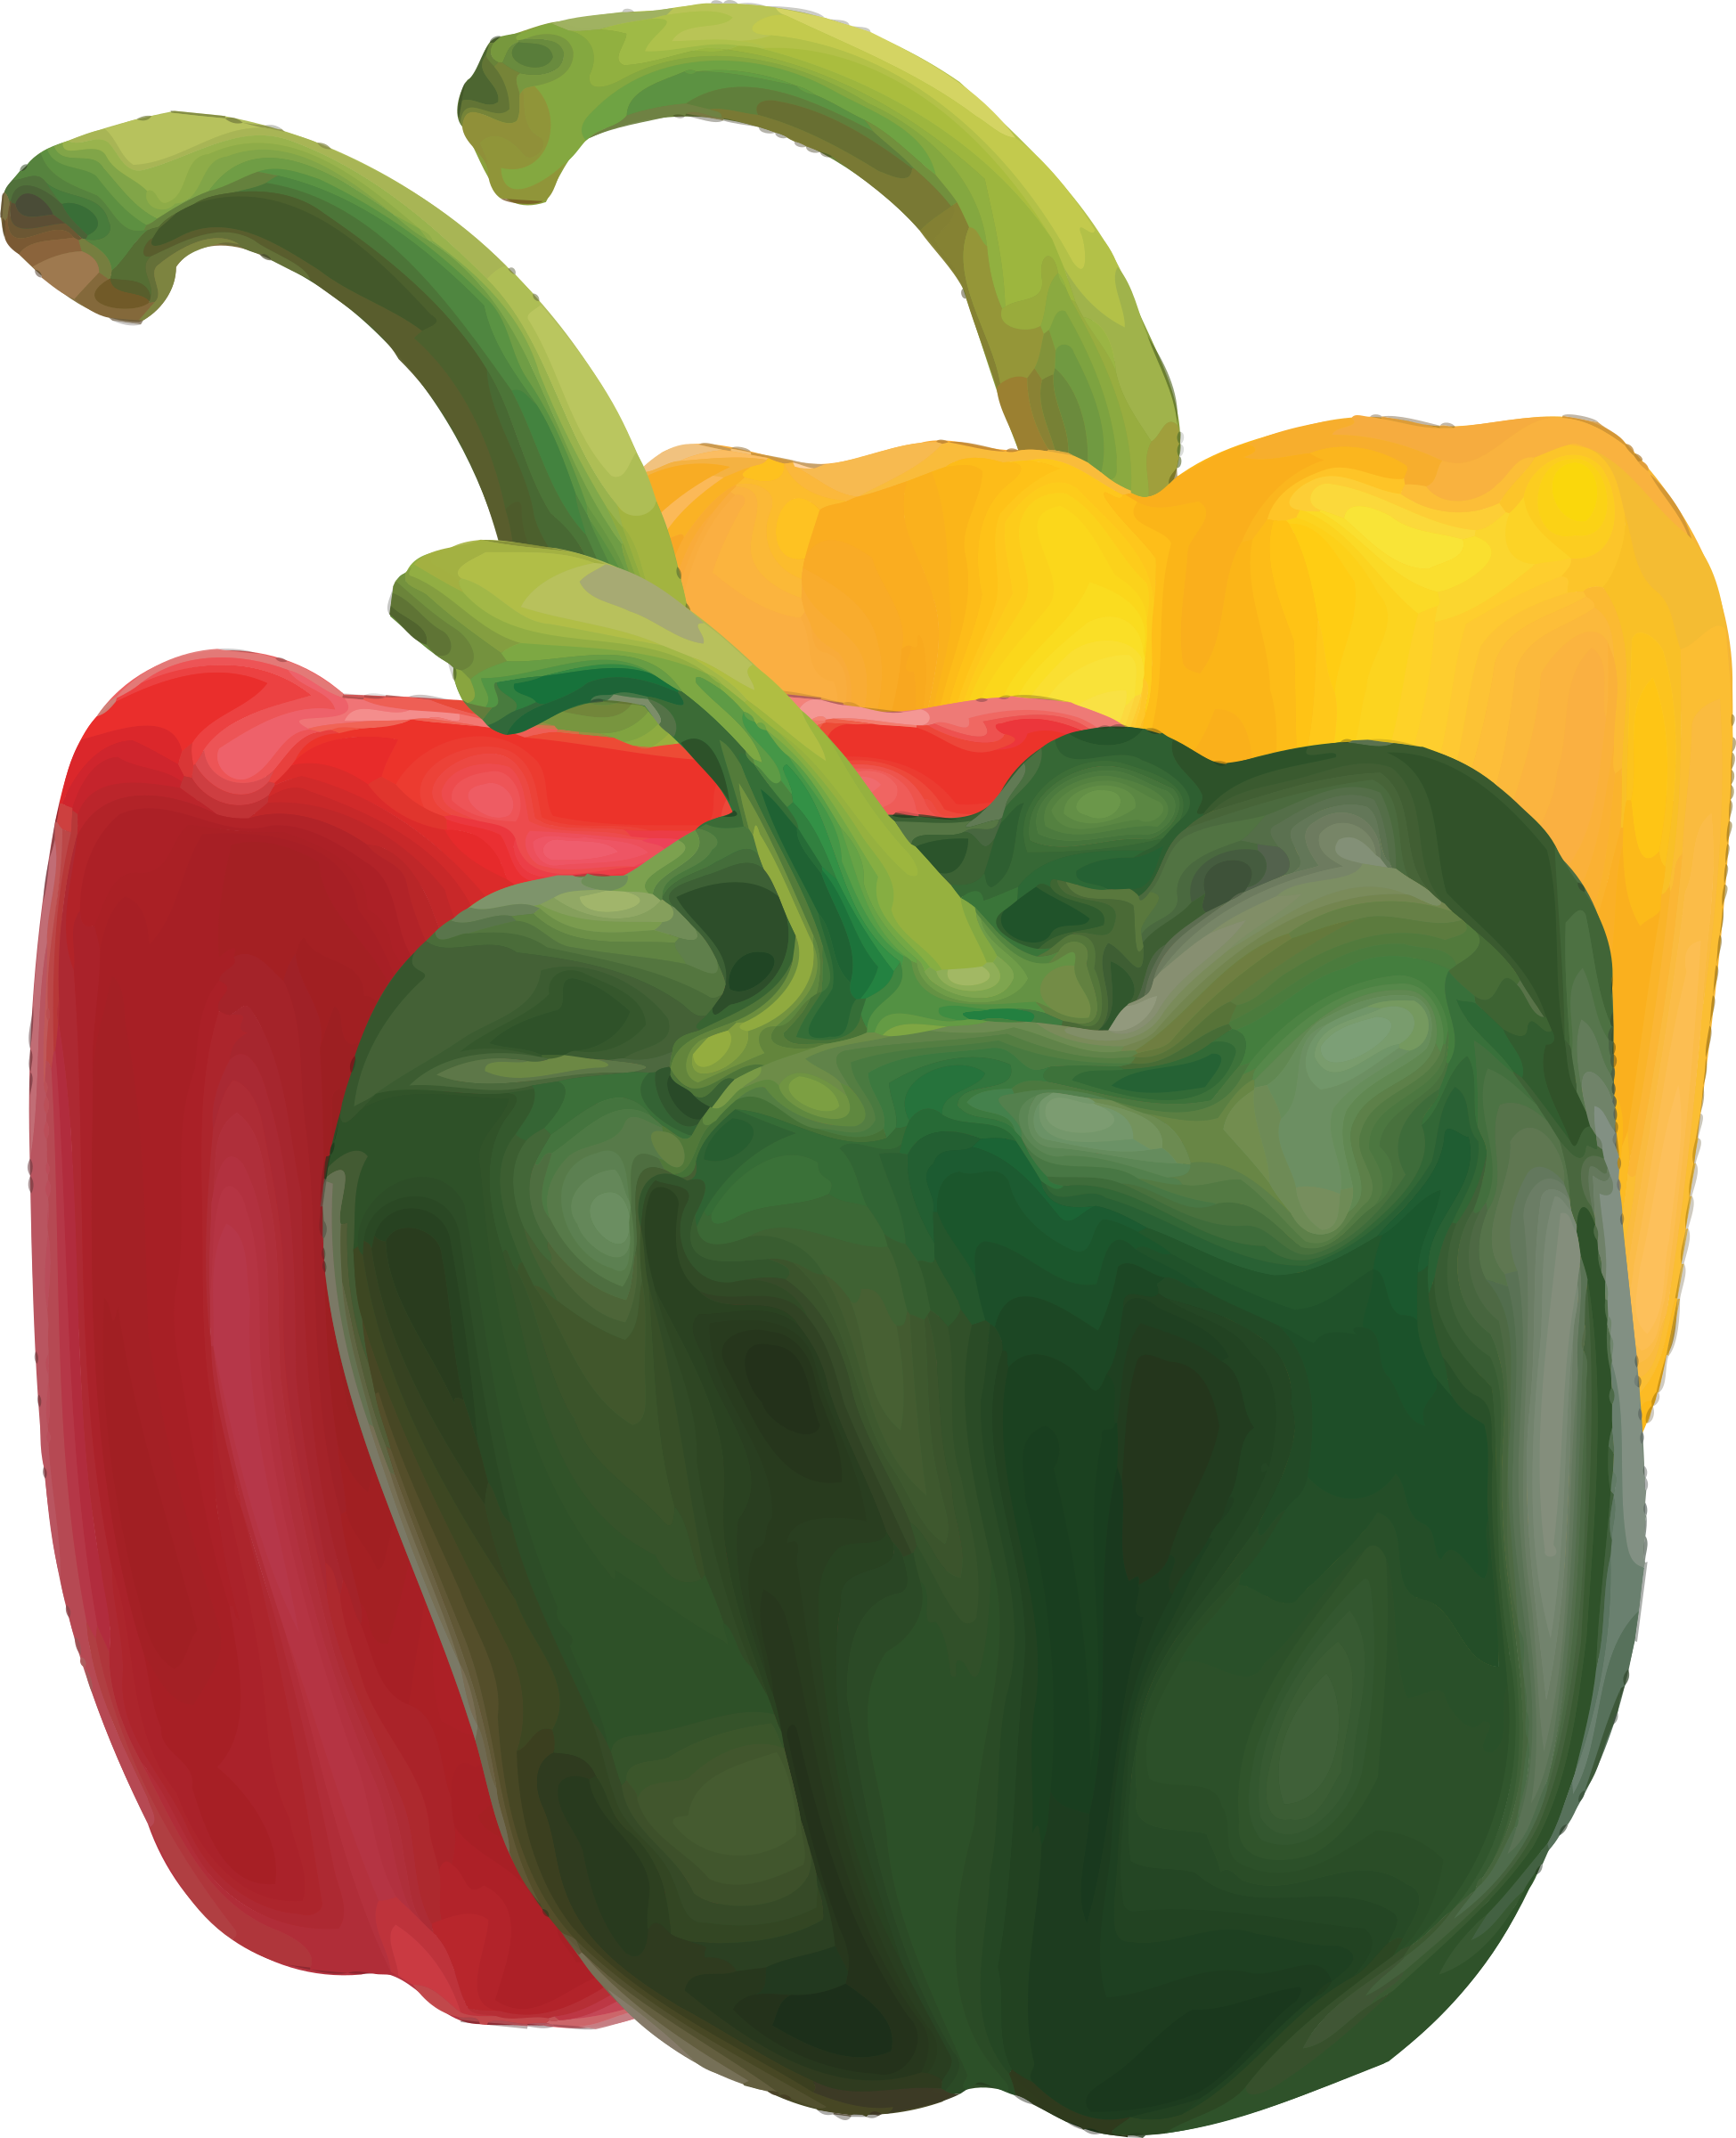 Peppers 2 by Firkin